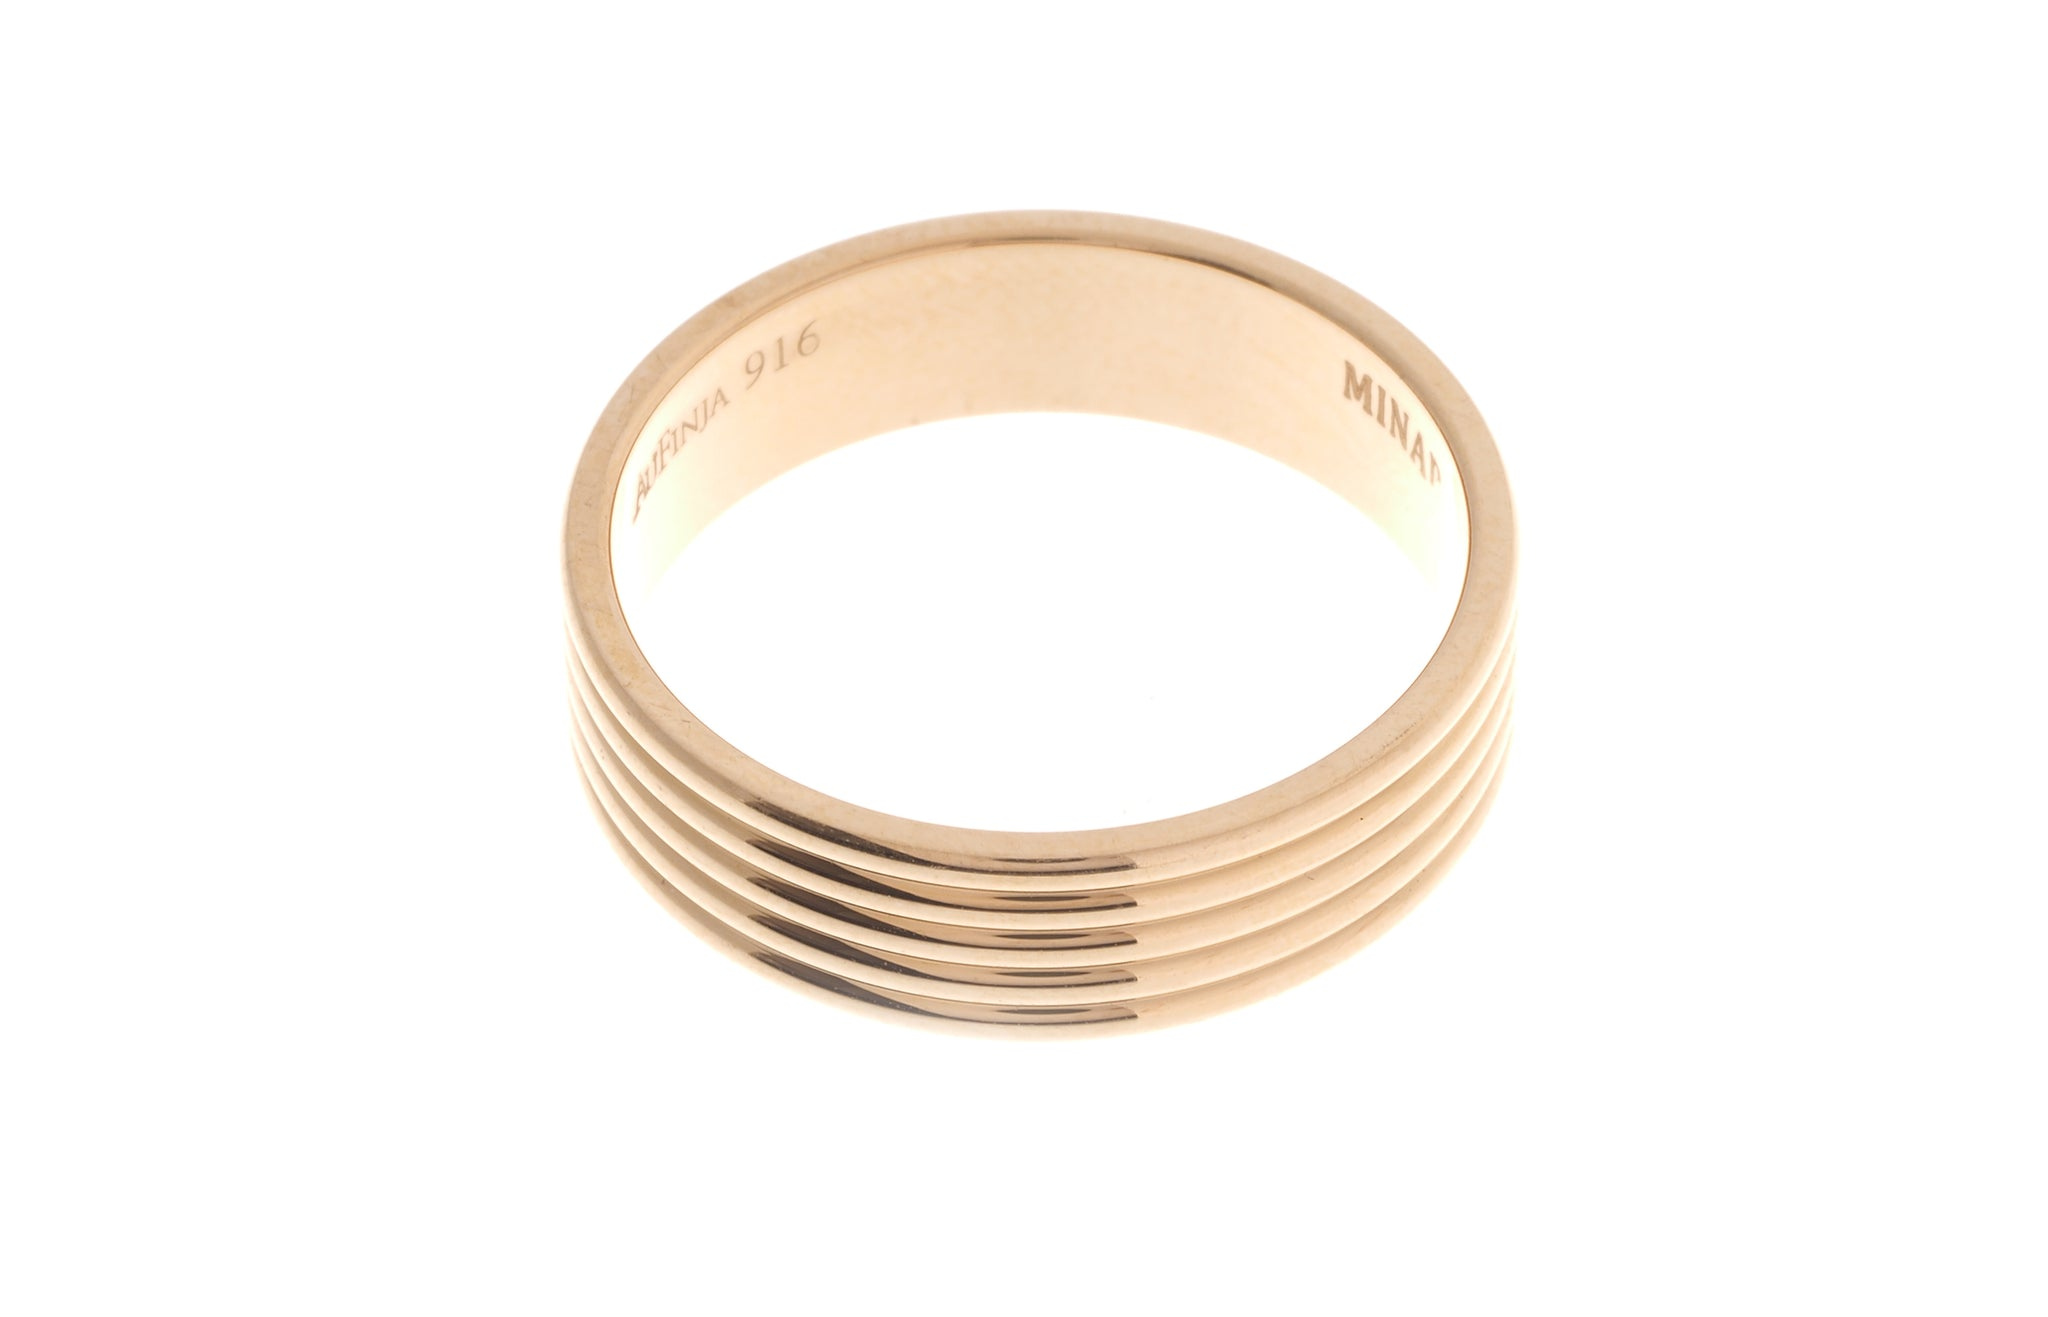 22ct Gold Wedding Band LR/GR-6934